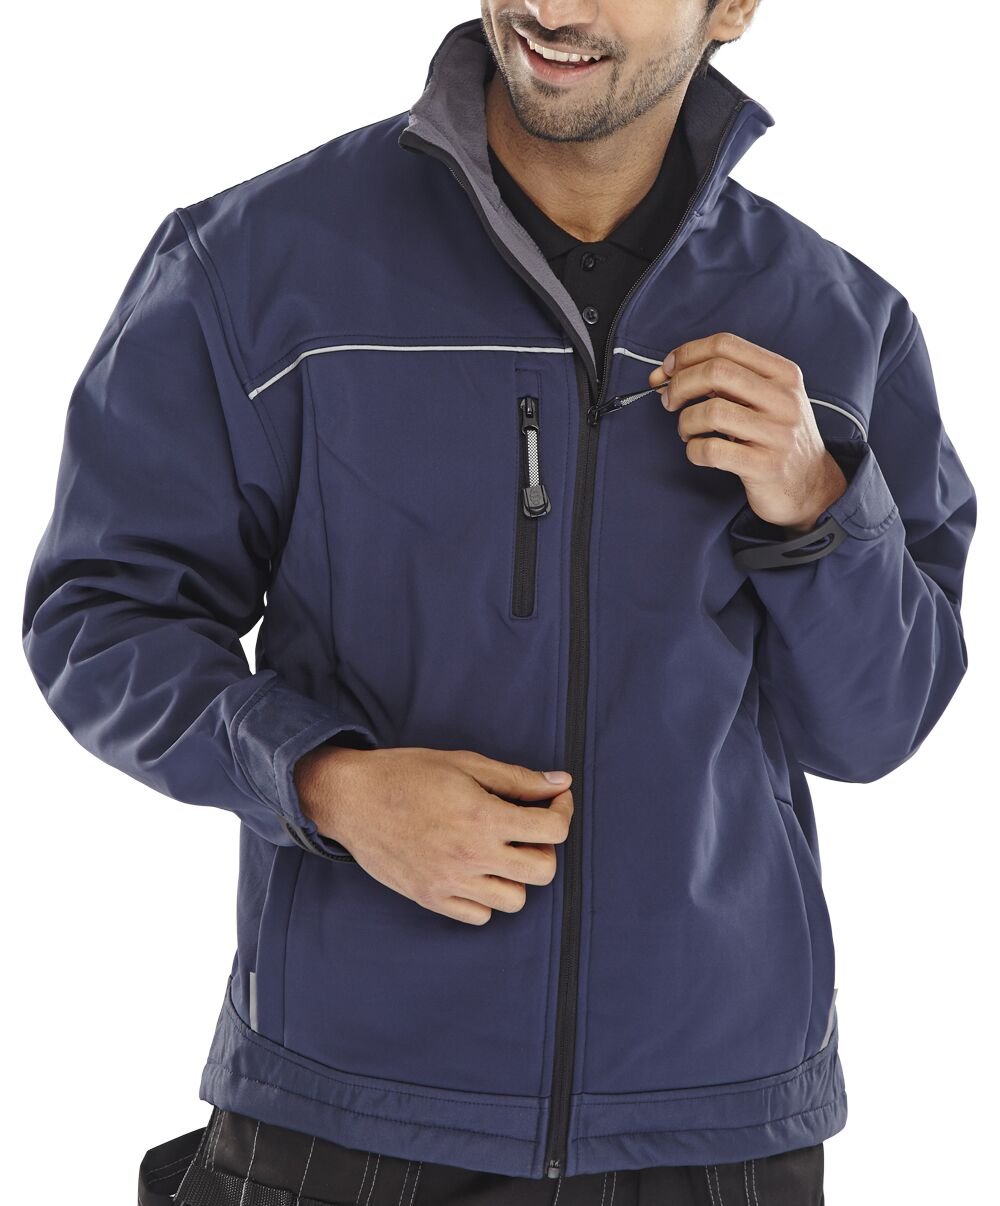 Soft Shell Click Workwear Soft Shell Jacket Water Resistant Windproof 2XL Navy Ref SSJNXXL *Approx 3 Day Leadtime*